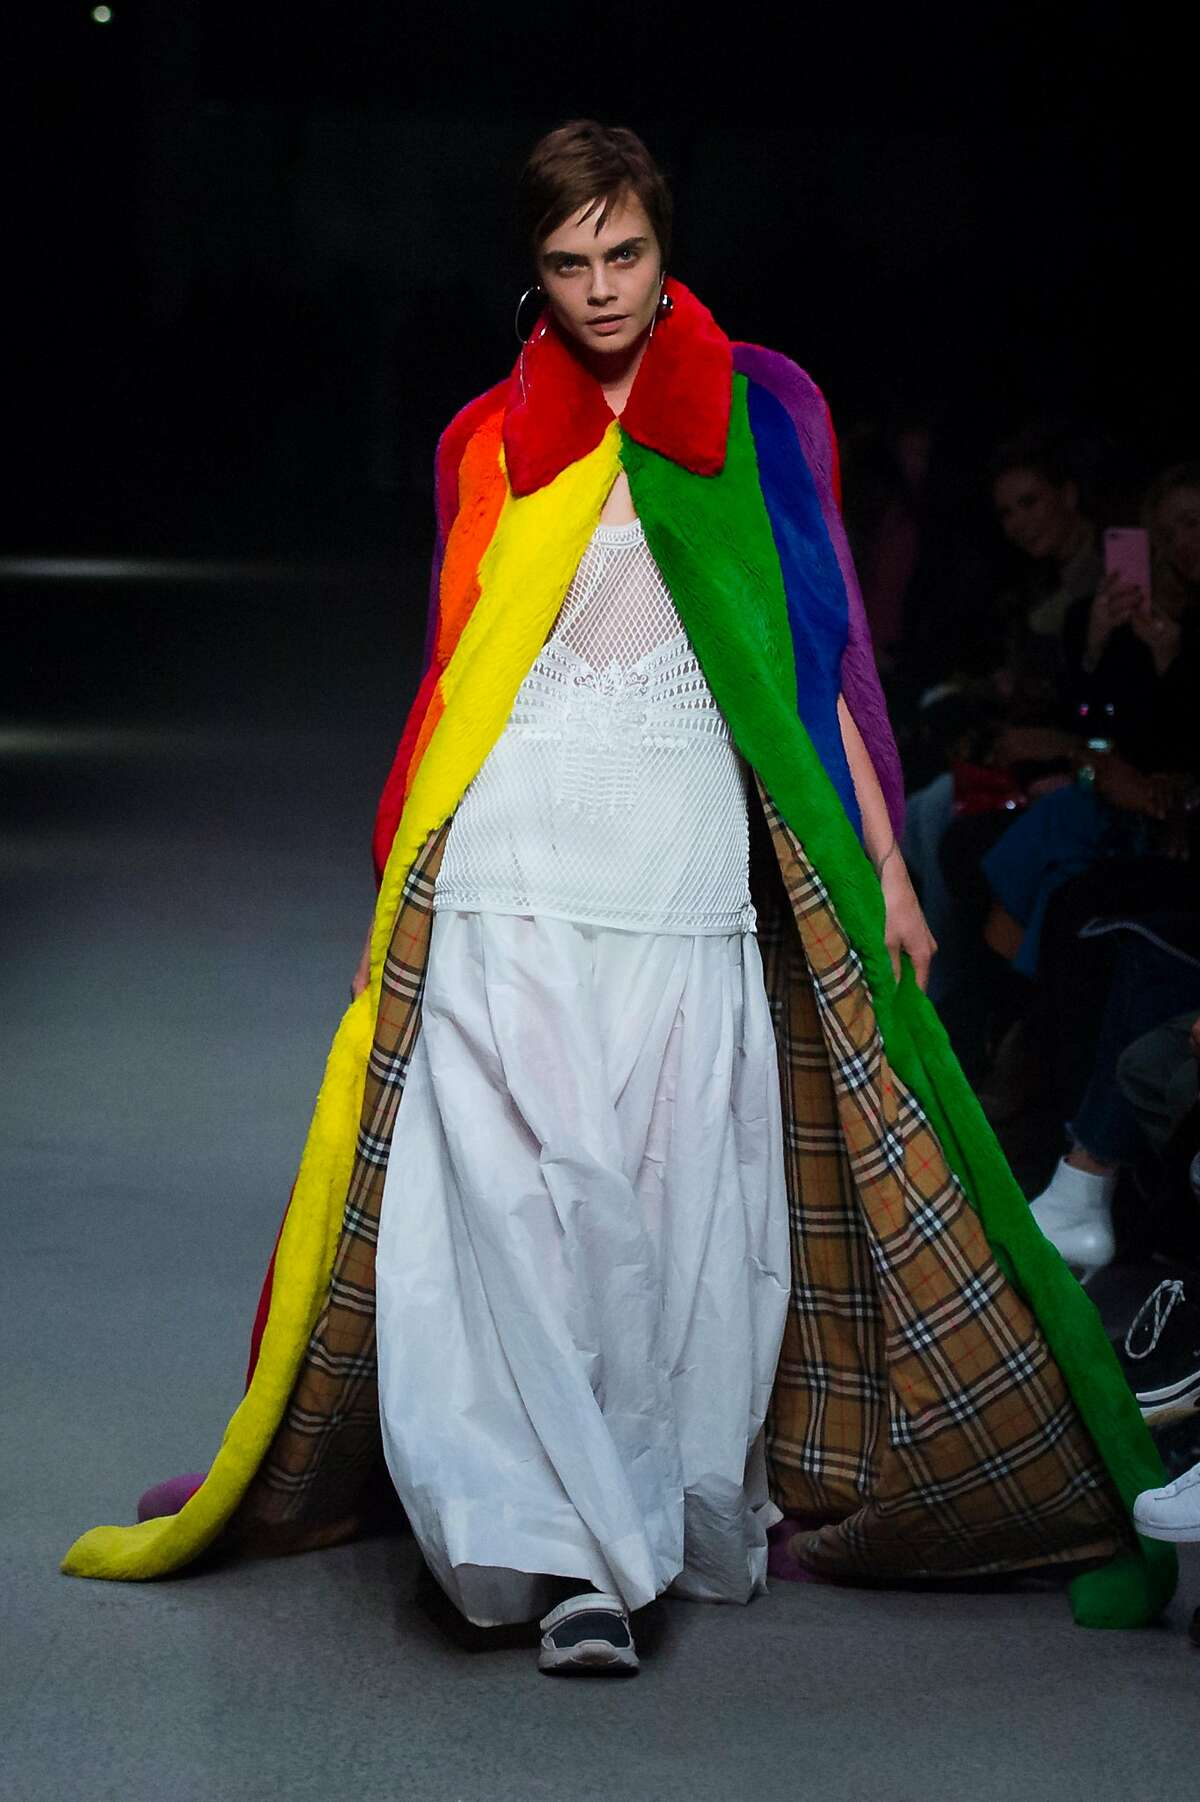 Christopher Bailey's final collection for Burberry features a rainbow scheme in tribute to the LGBT community.